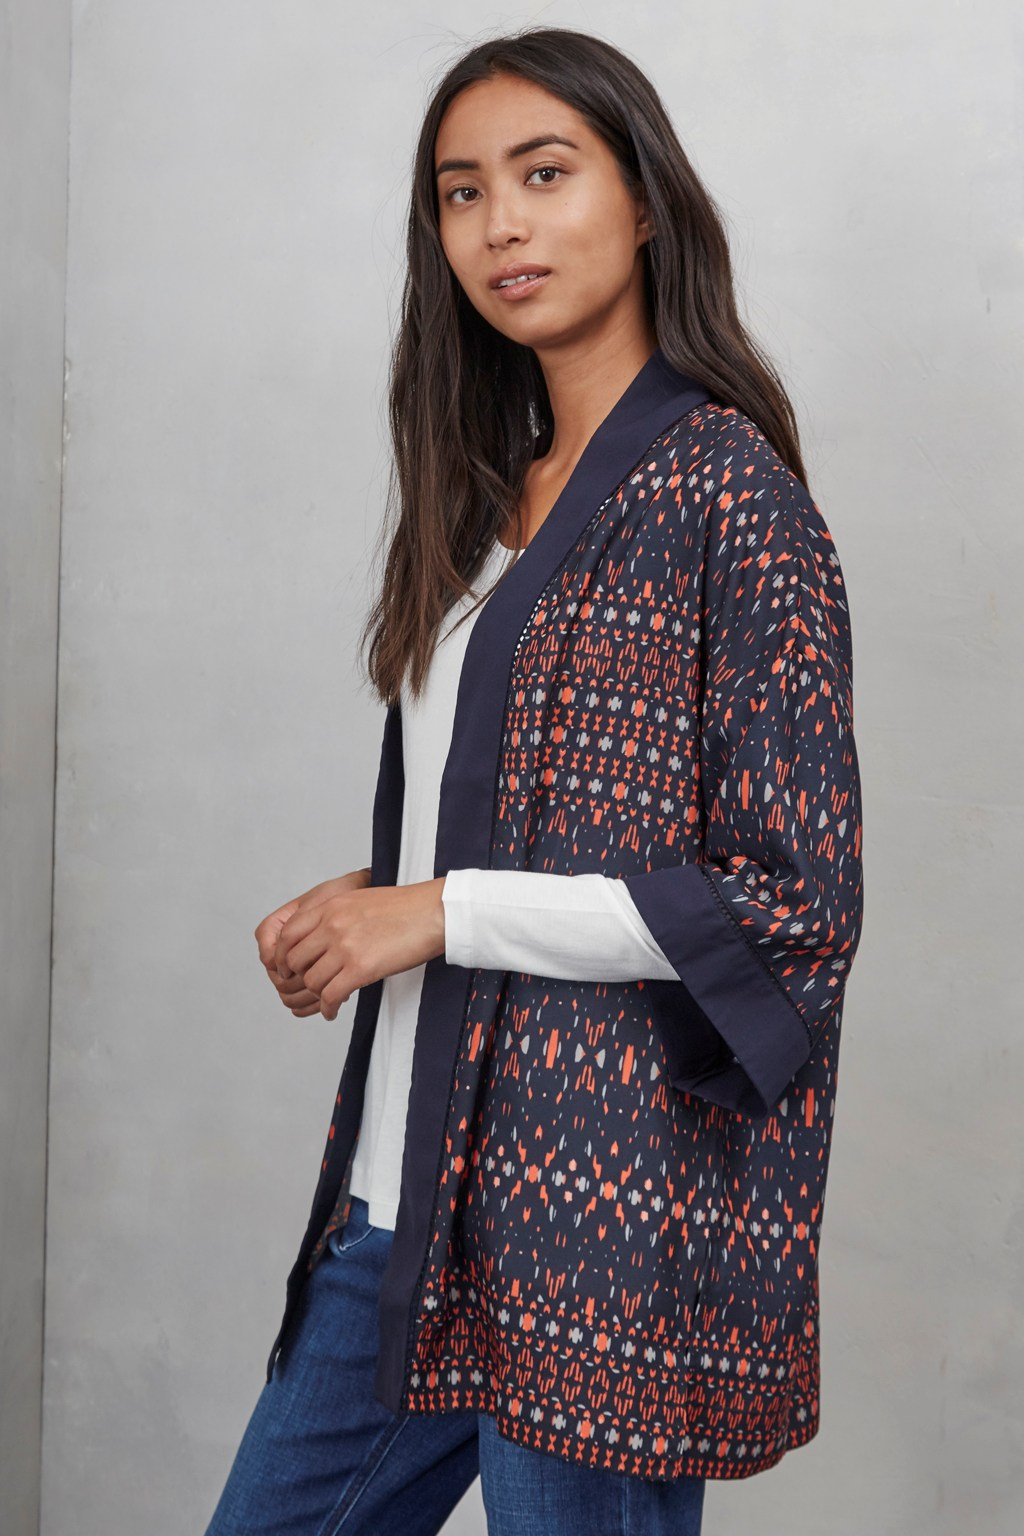 Find great deals on eBay for vintage kimono jacket. Shop with confidence.